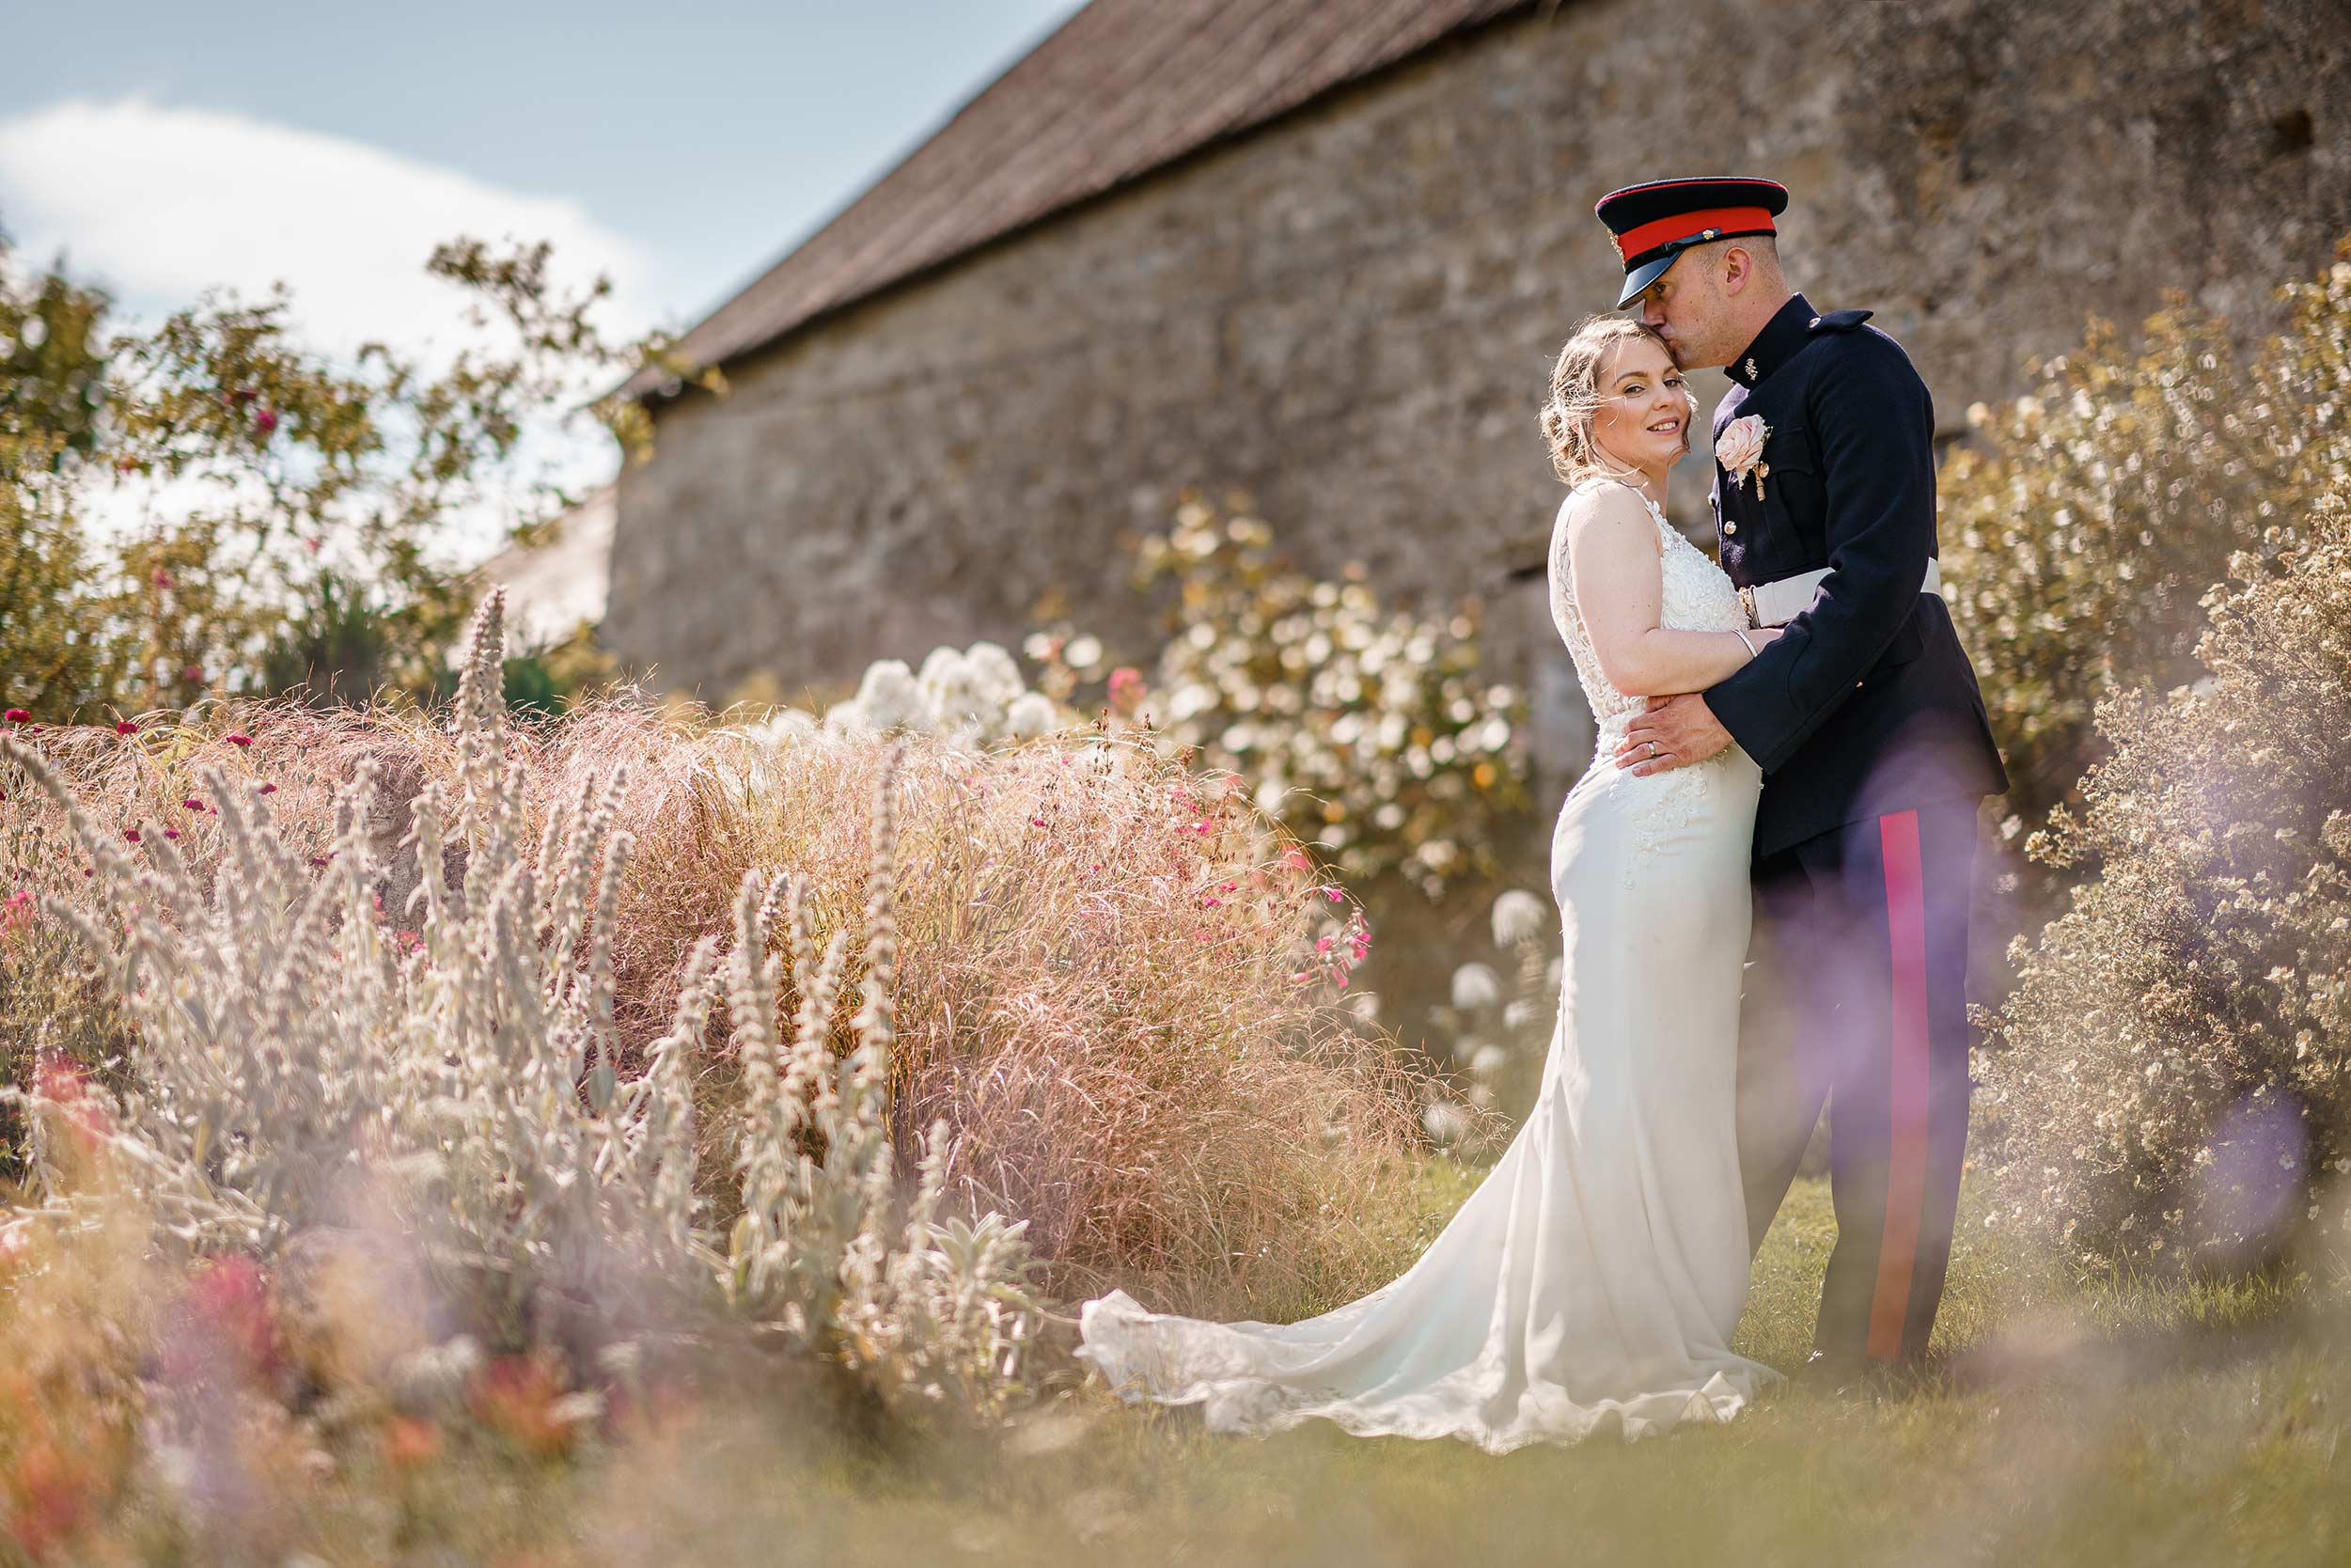 The Barn at Upcote Wedding Photography - Wedding Photographer in the Cotswolds